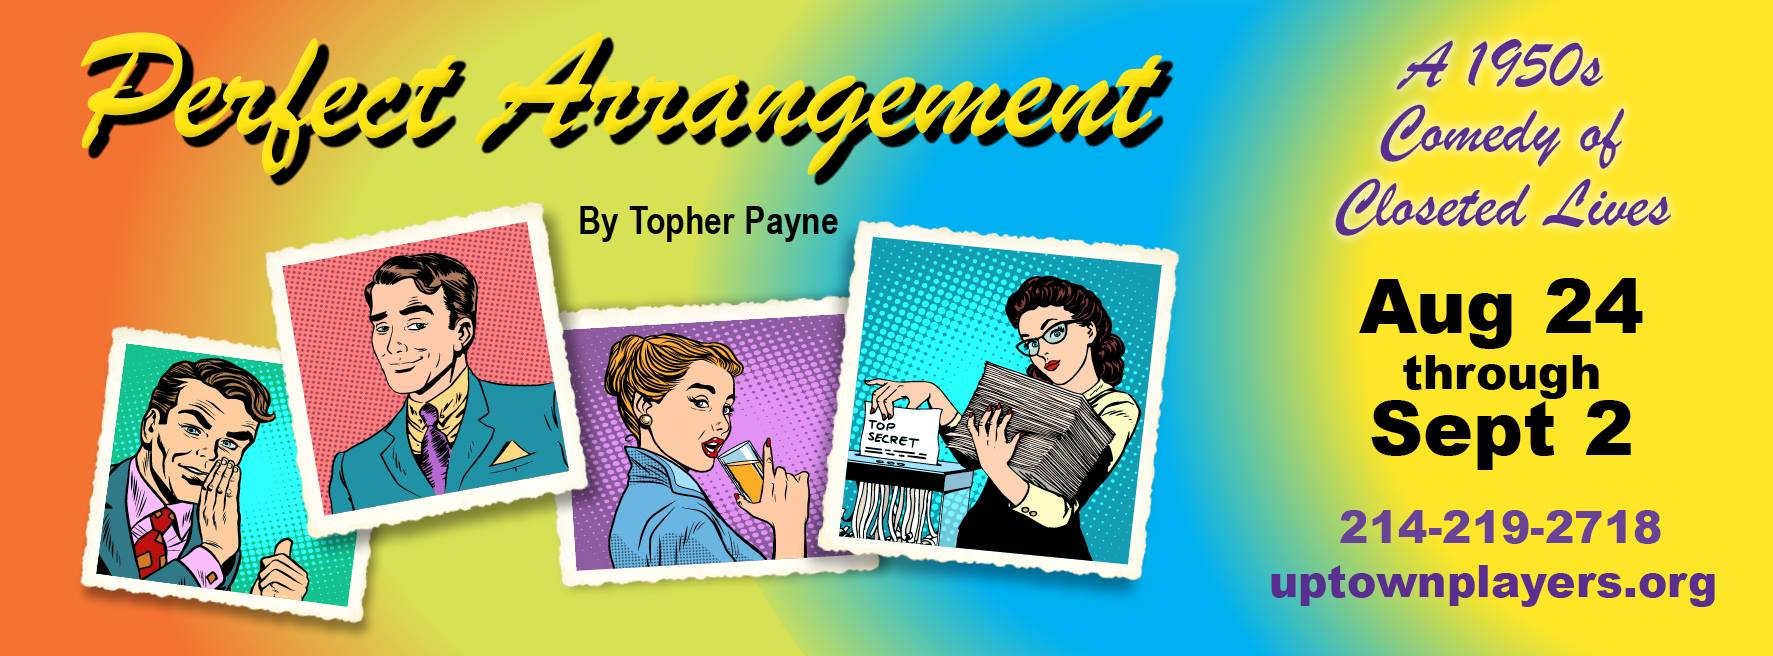 Agreement consent funny satire sex sexual spoof